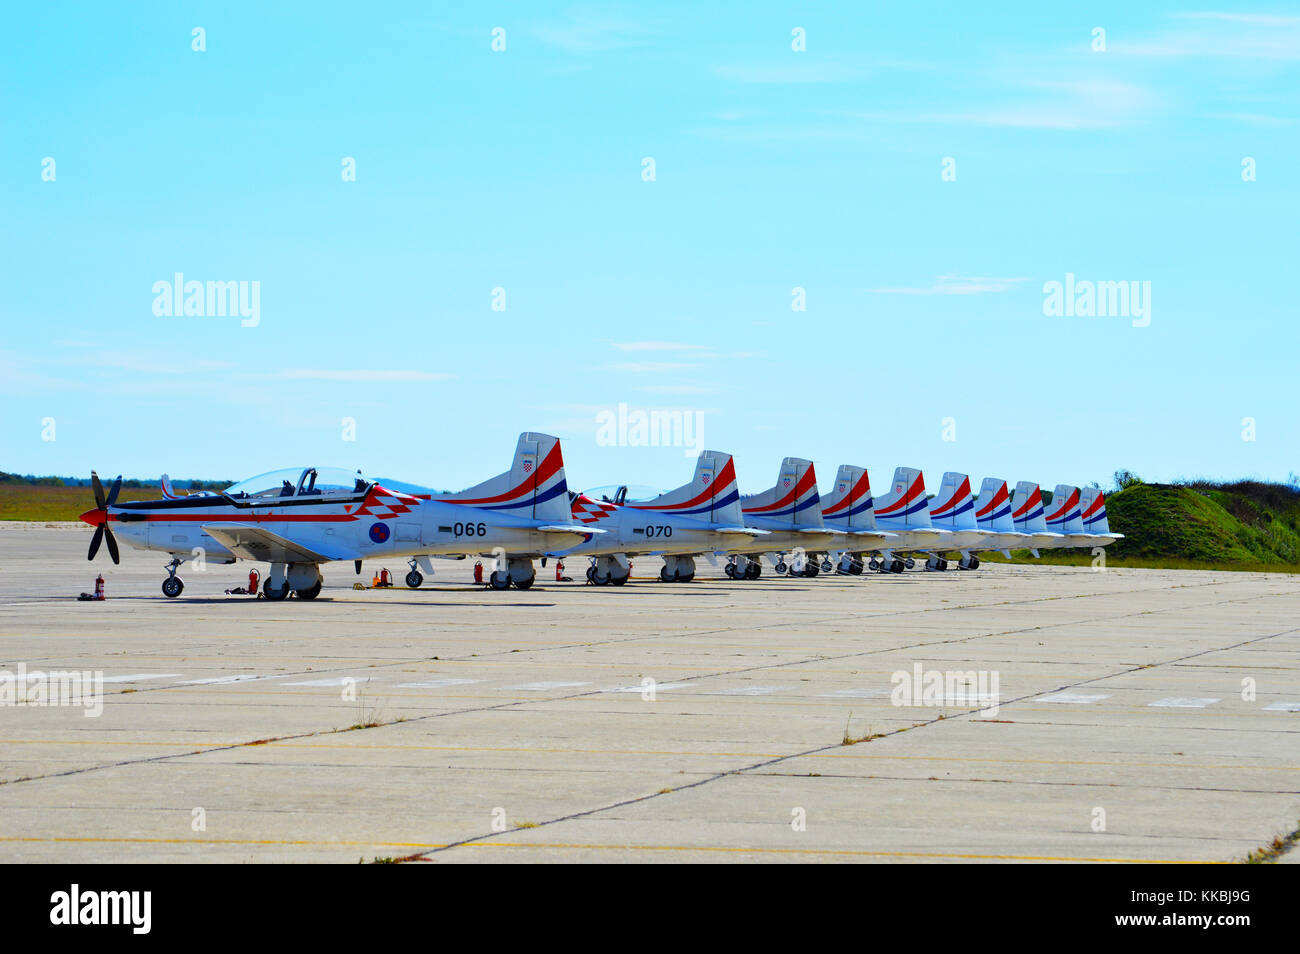 Croatian AF aerobatics team Krila Oluje  planes, Pilatus PC9 resting on the airport apron before the flight , Zemunik - Stock Image